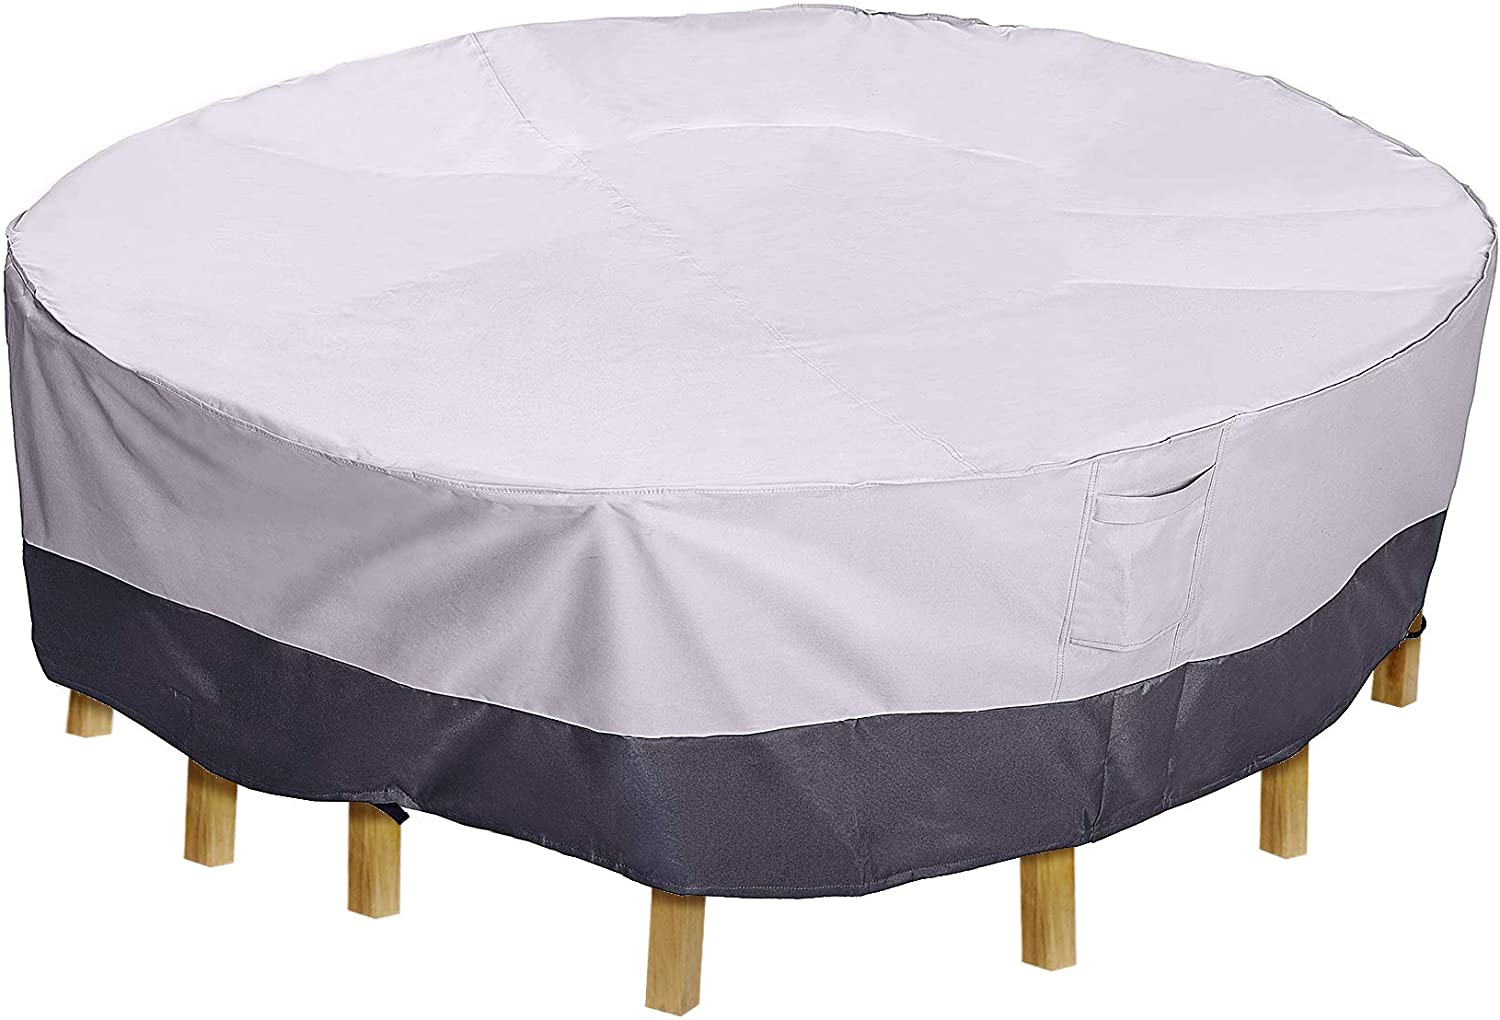 AsterOutdoor Waterproof Patio Furniture Cover, Heavy Duty 600D Oxford Fabric, UV Protection Patio Furniture Cover for Round Patio/Outdoor Dining Table Chairs, 70